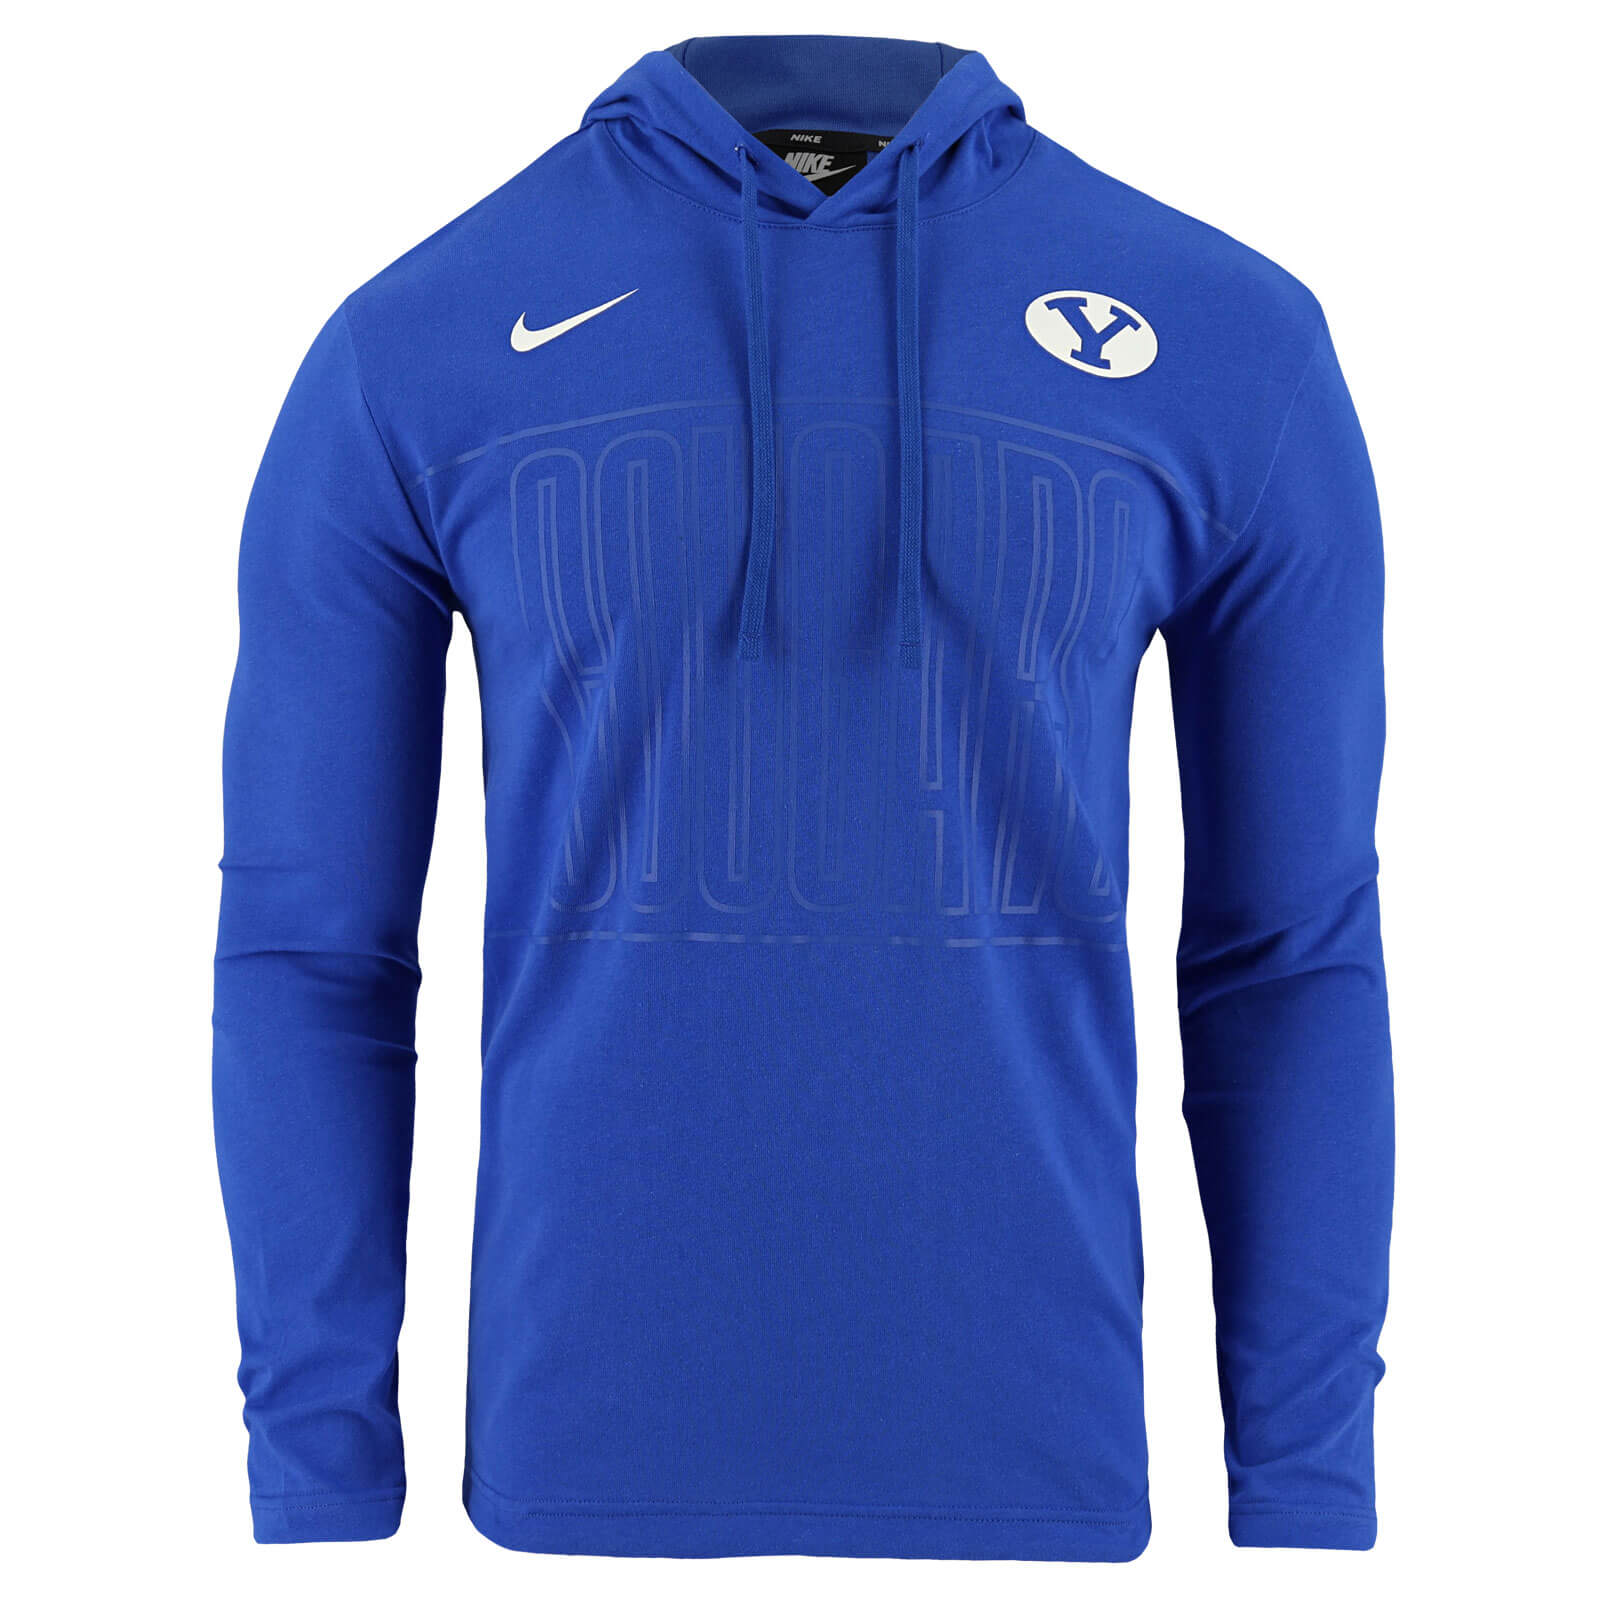 Oval Y Cougars Hooded Long Sleeve Shirt - Nike